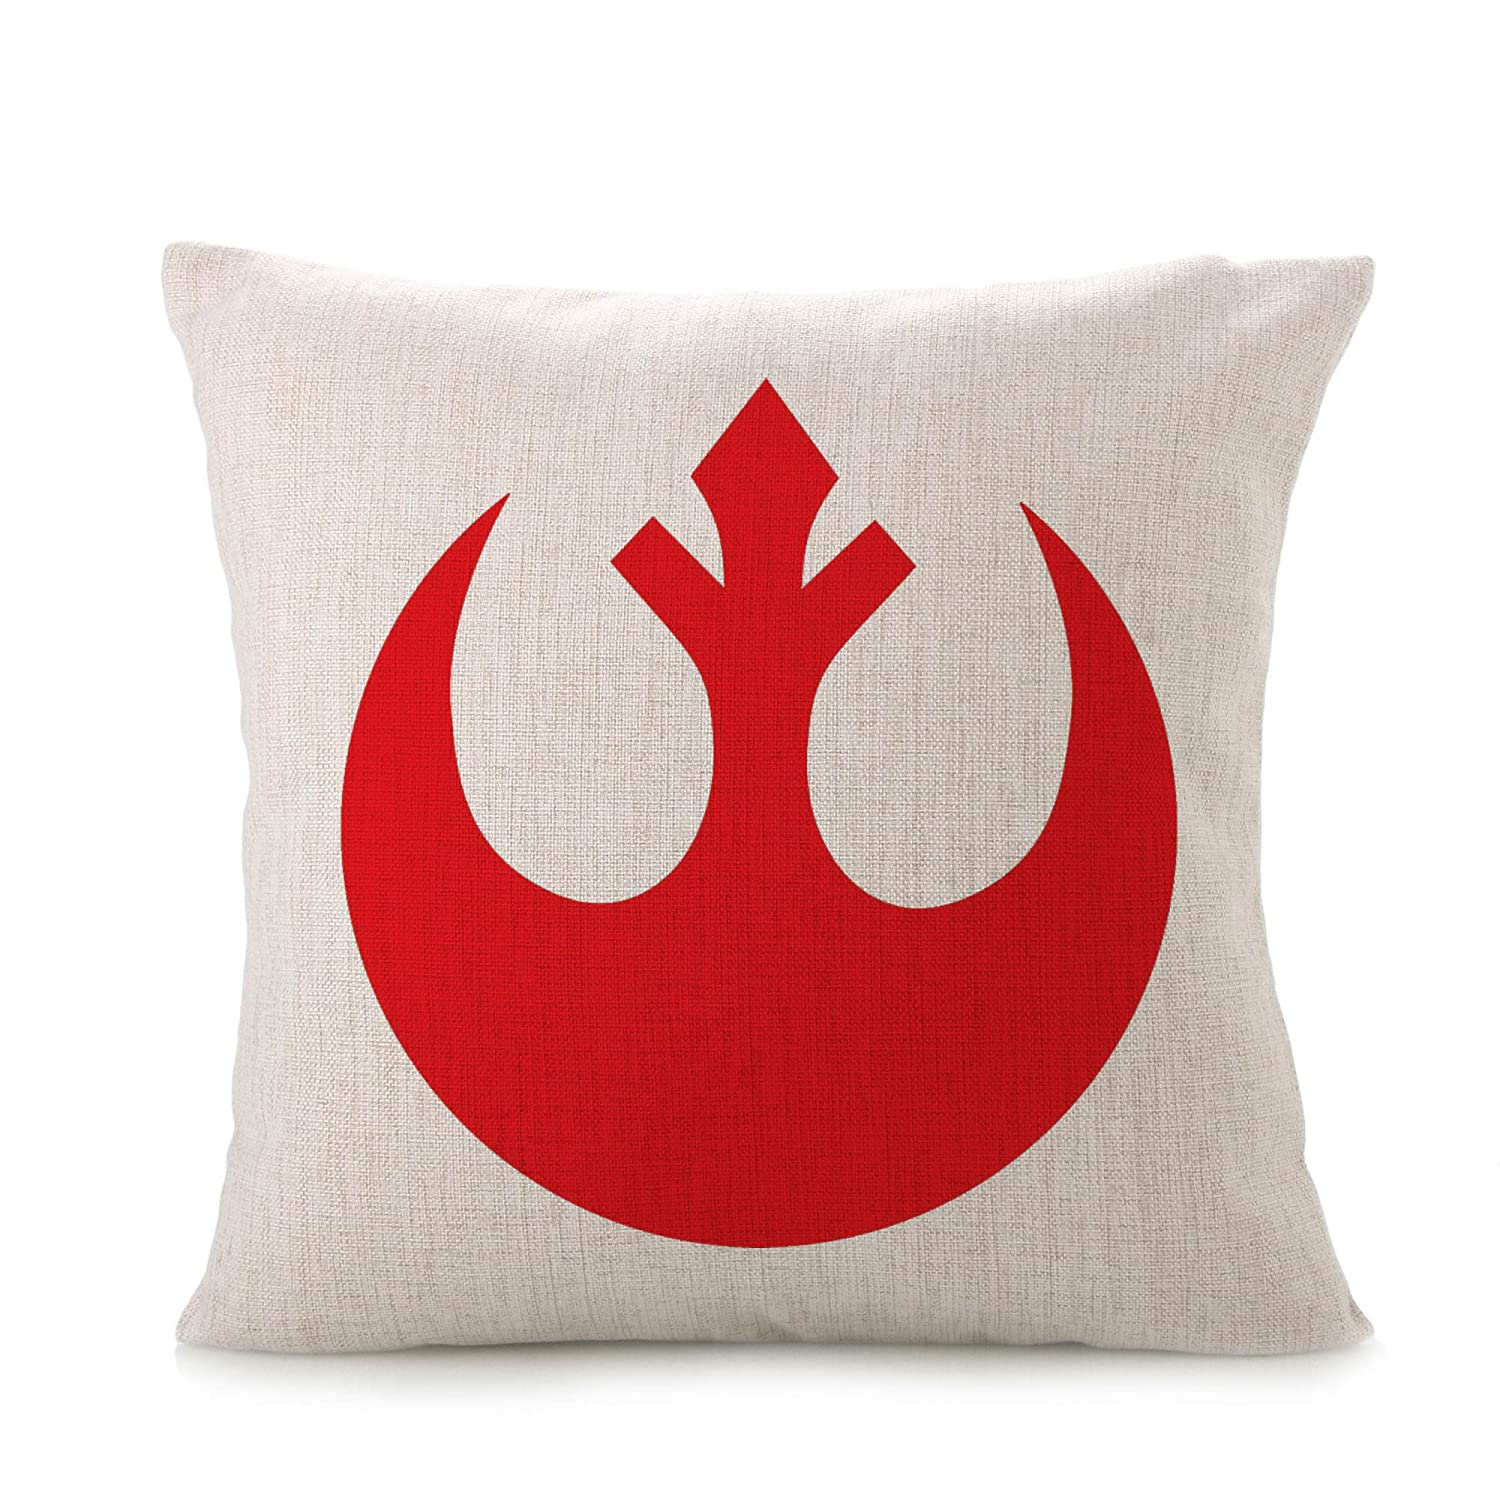 Bayyon Decorative Throw Pillow Covers Cotton Linen Cushion Star Wars Fans Covers 18 x 18 inch Rebel Alliance